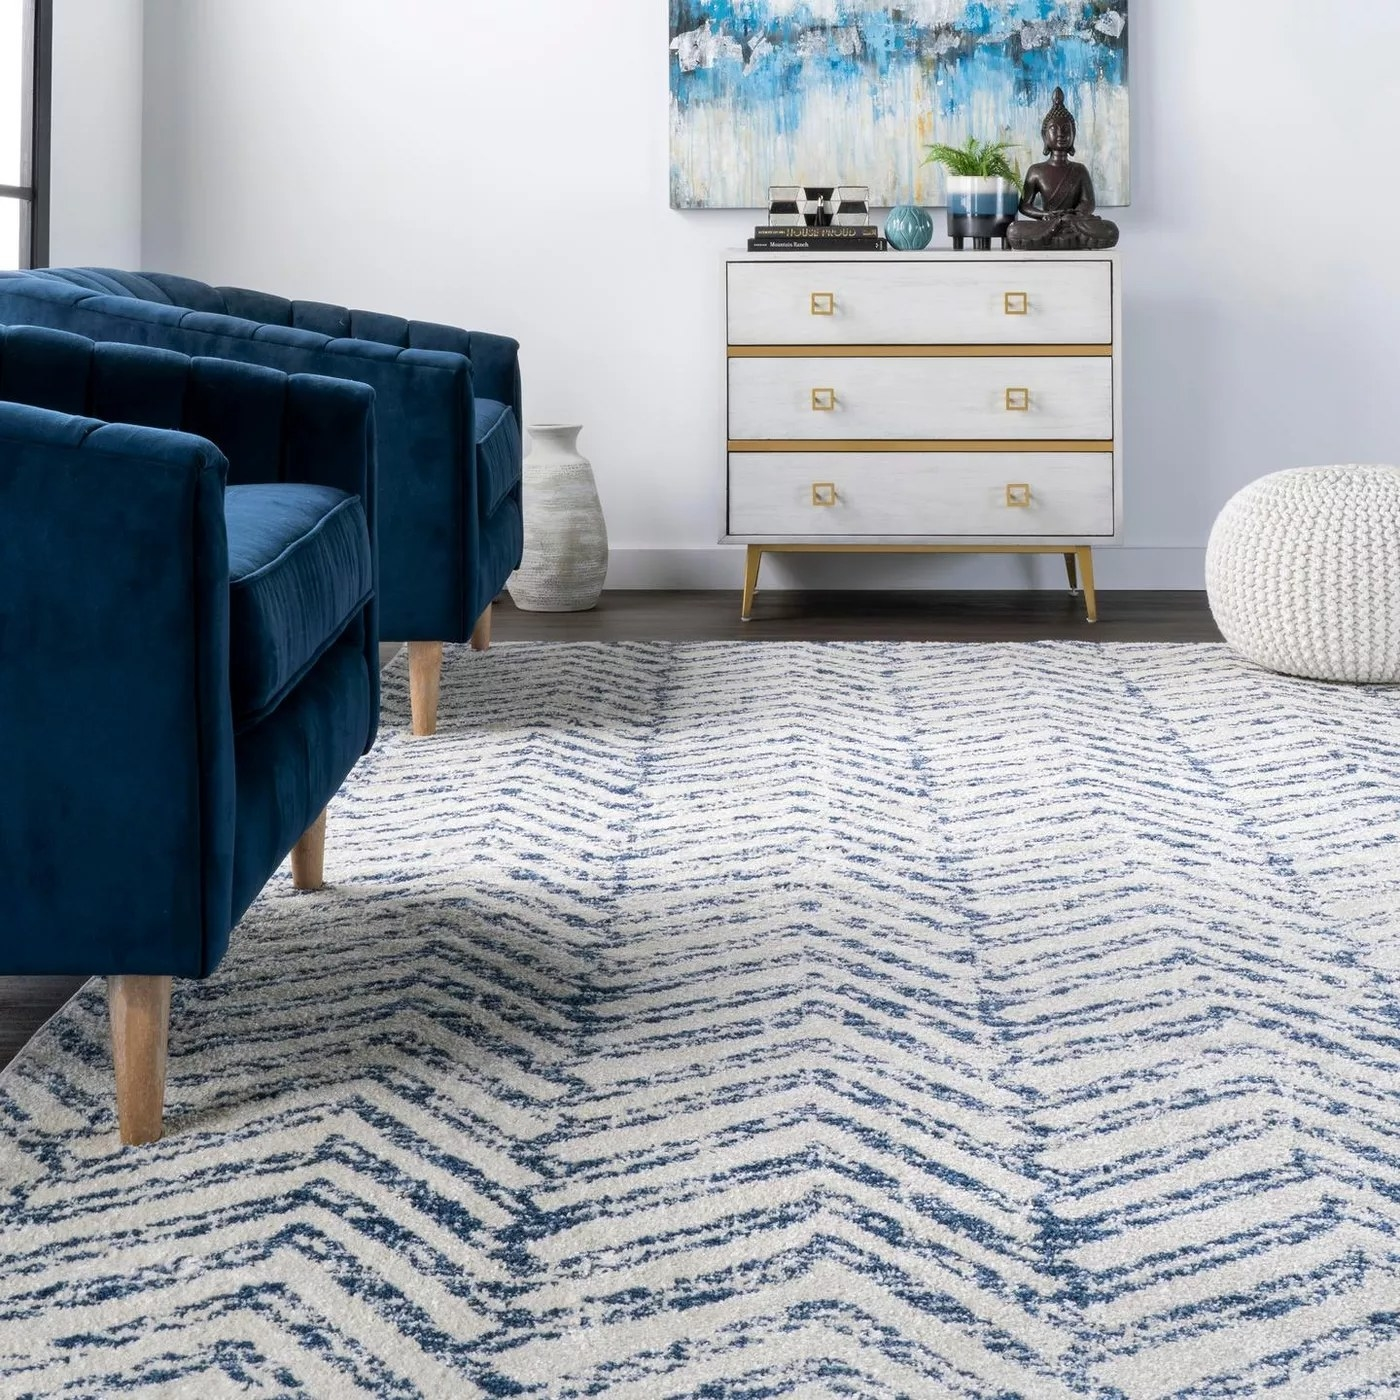 The blue and white rug